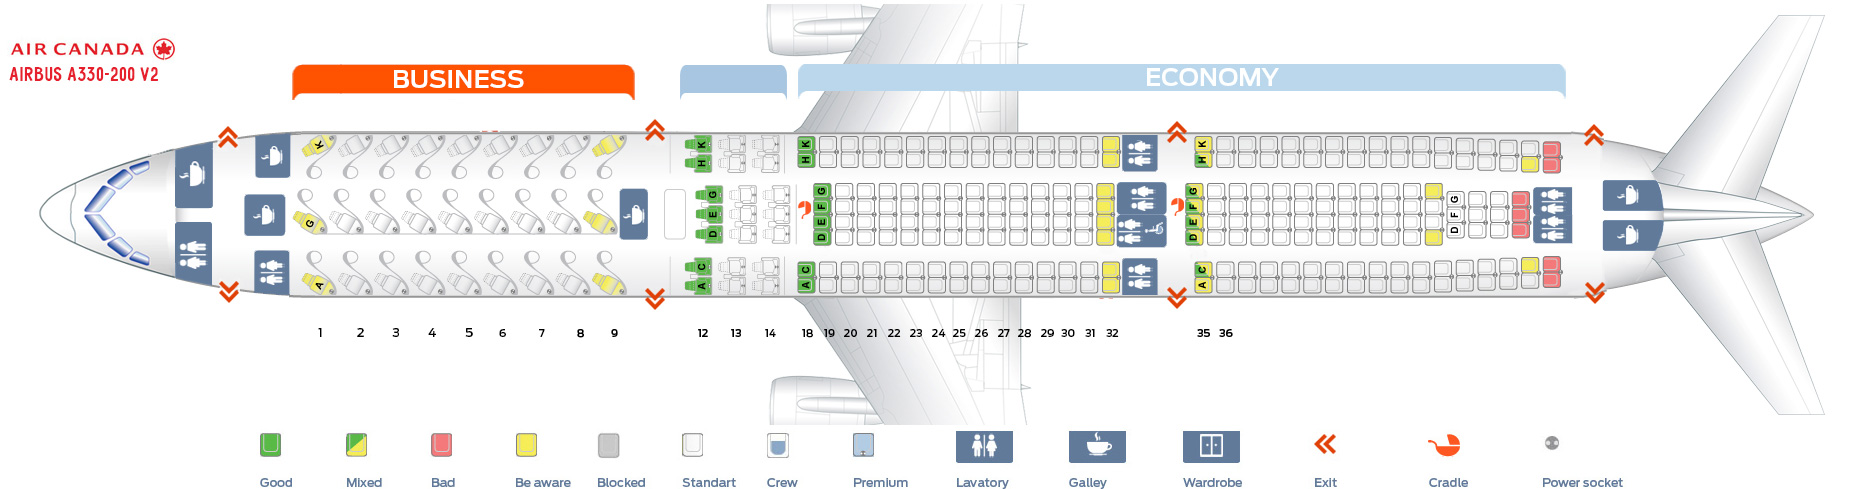 Seat map Airbus A330-300 Air Canada. Version 2